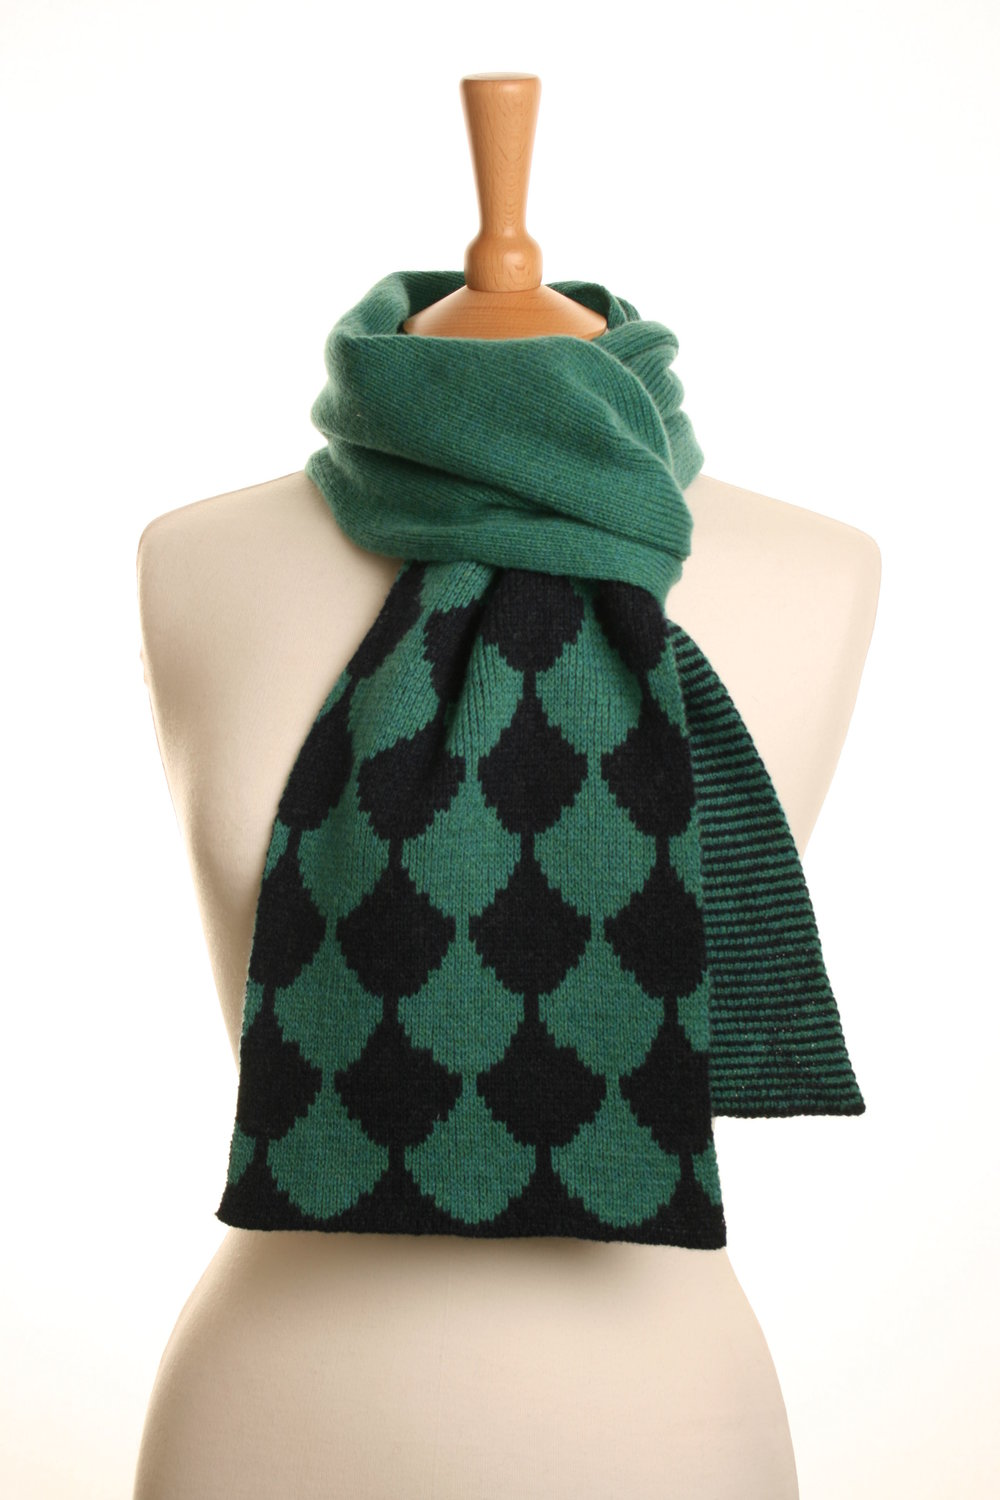 Jade Indigo Scallop Scarf Knitted Lambswool £75